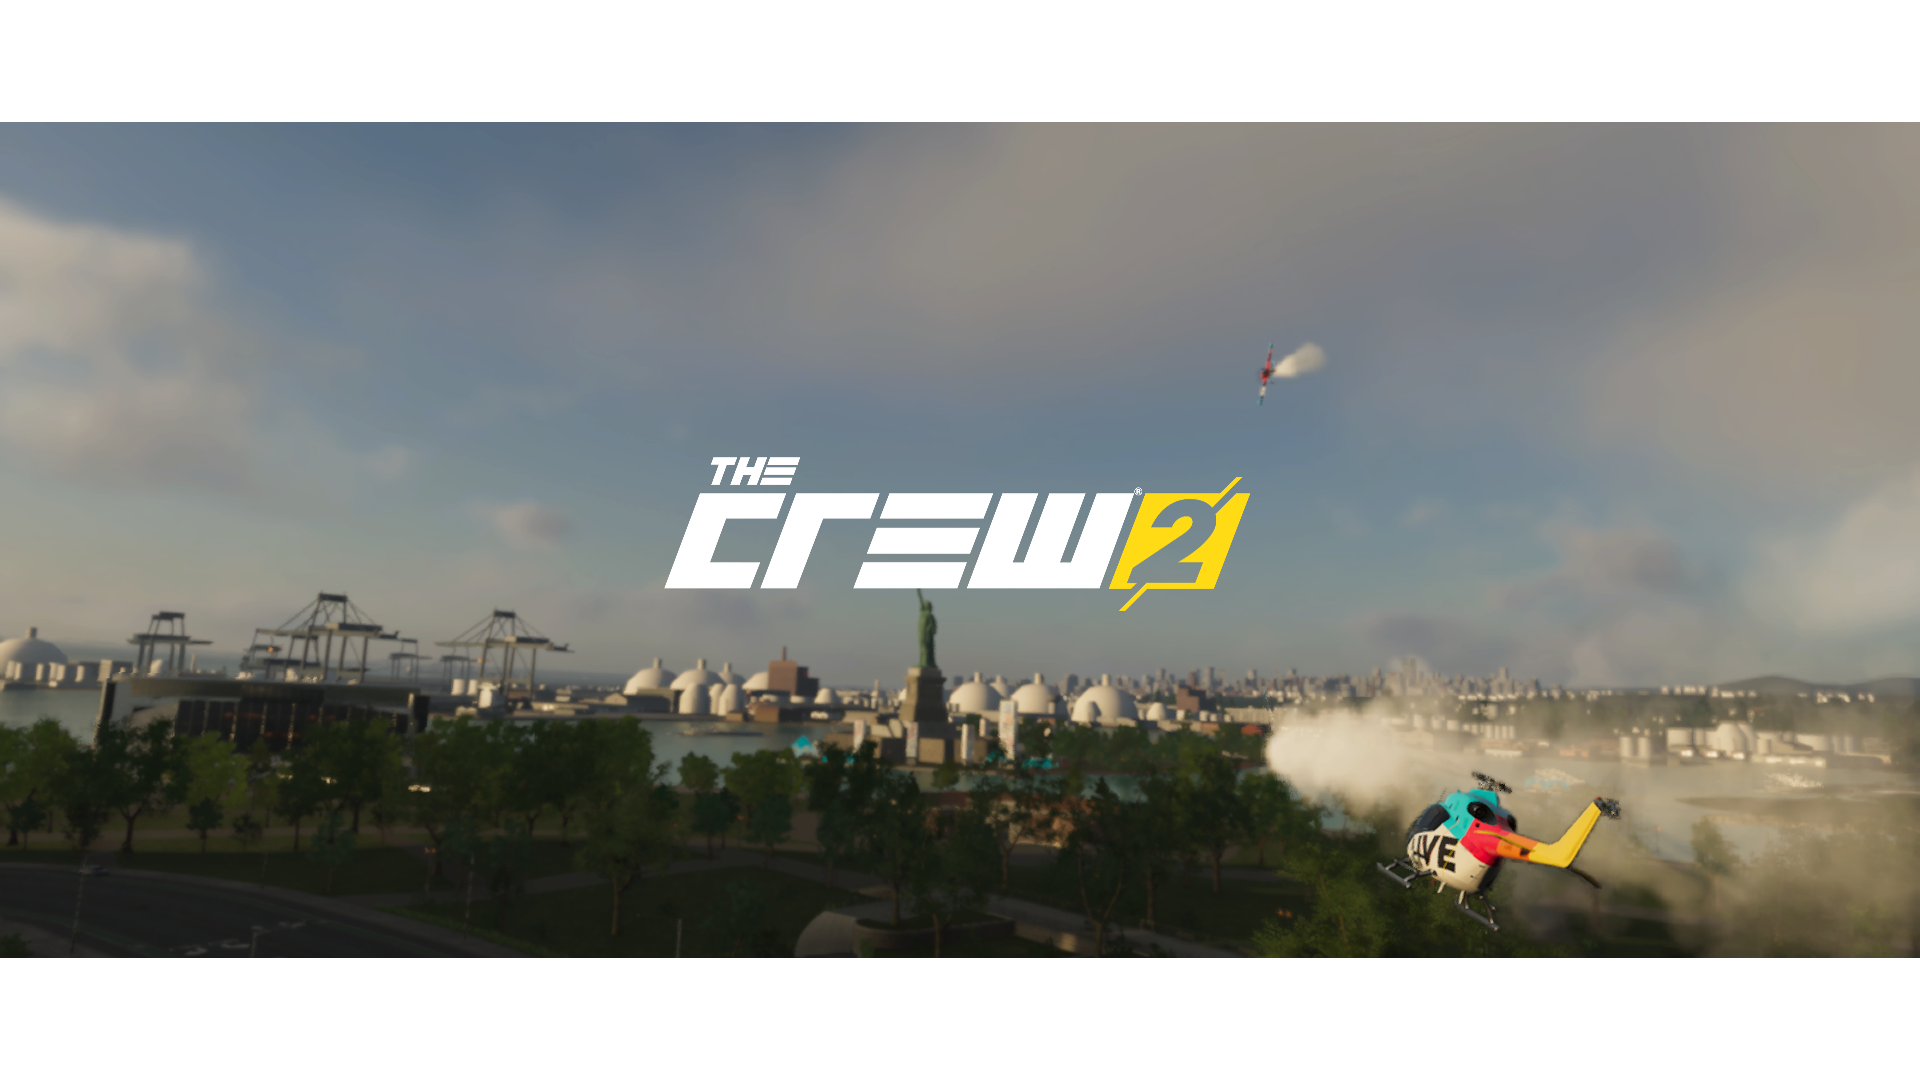 The Crew 2 Title